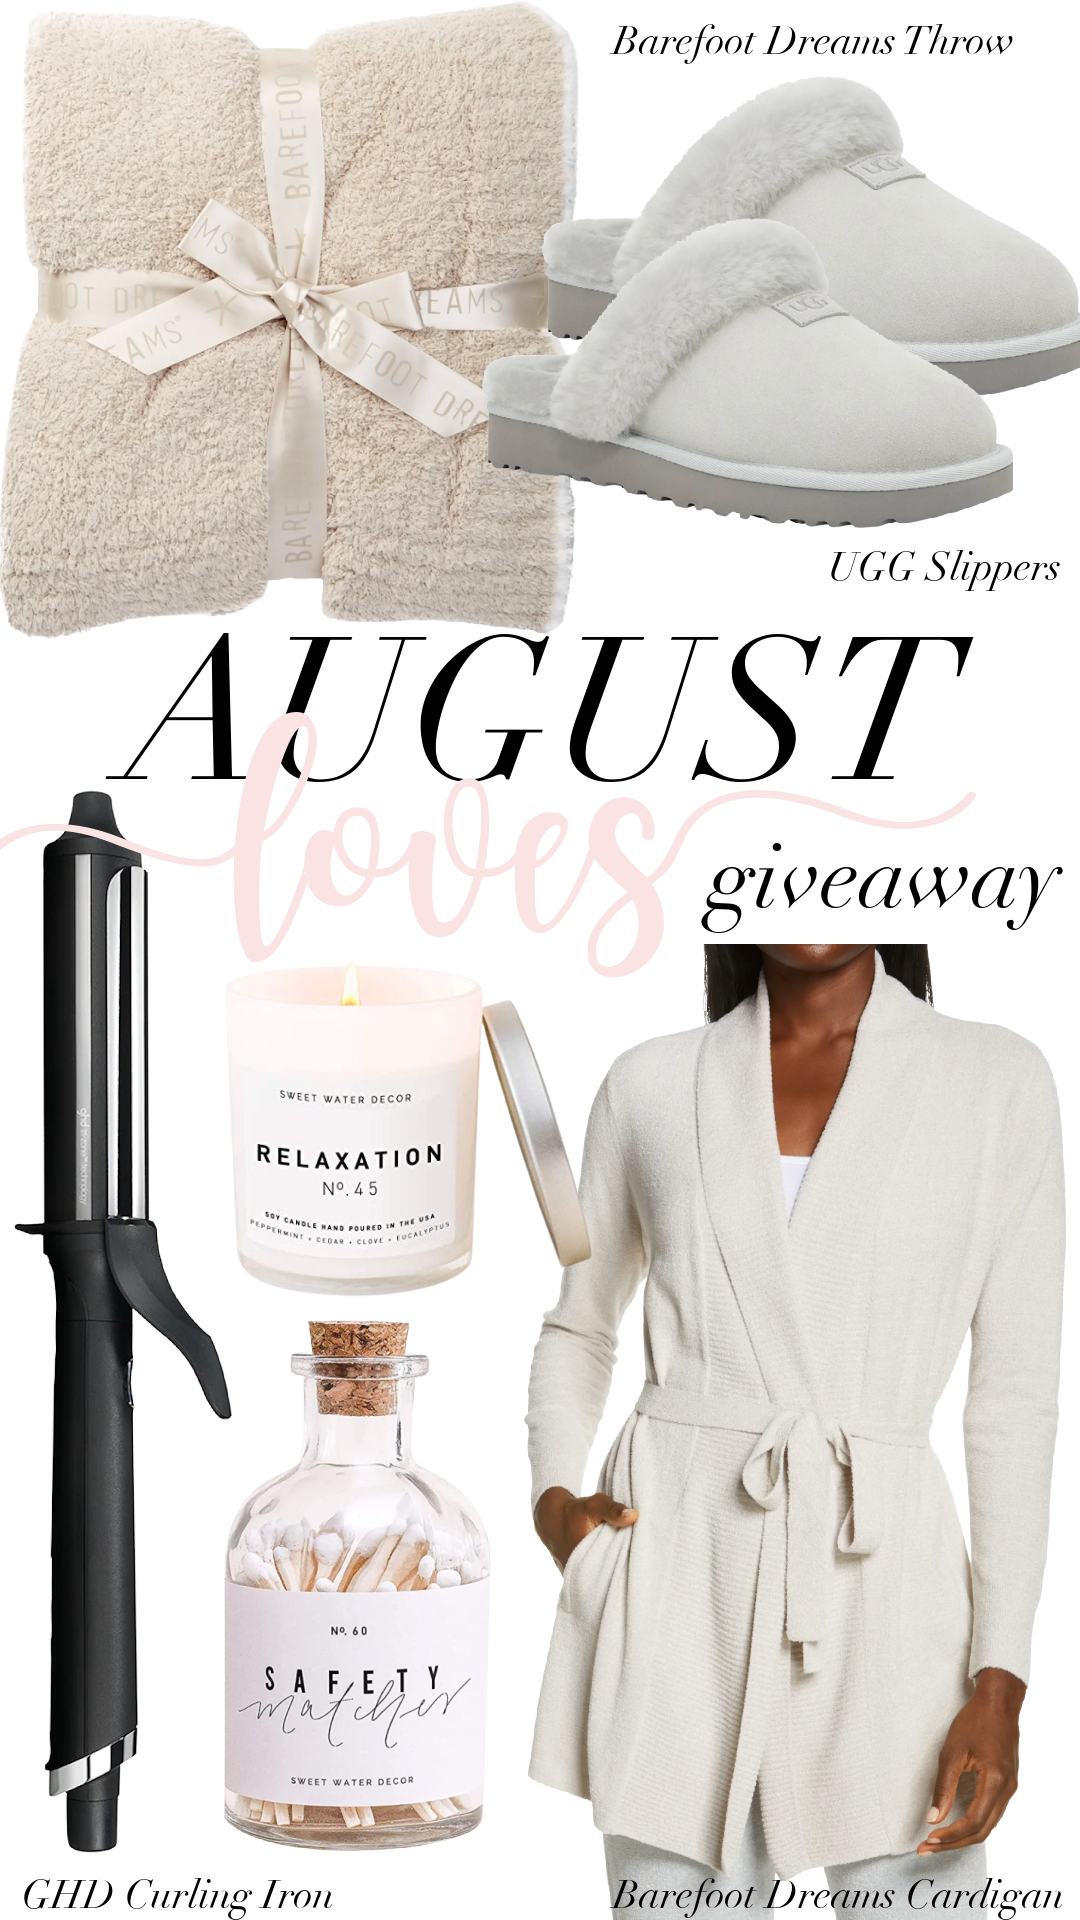 August Loves Giveaway